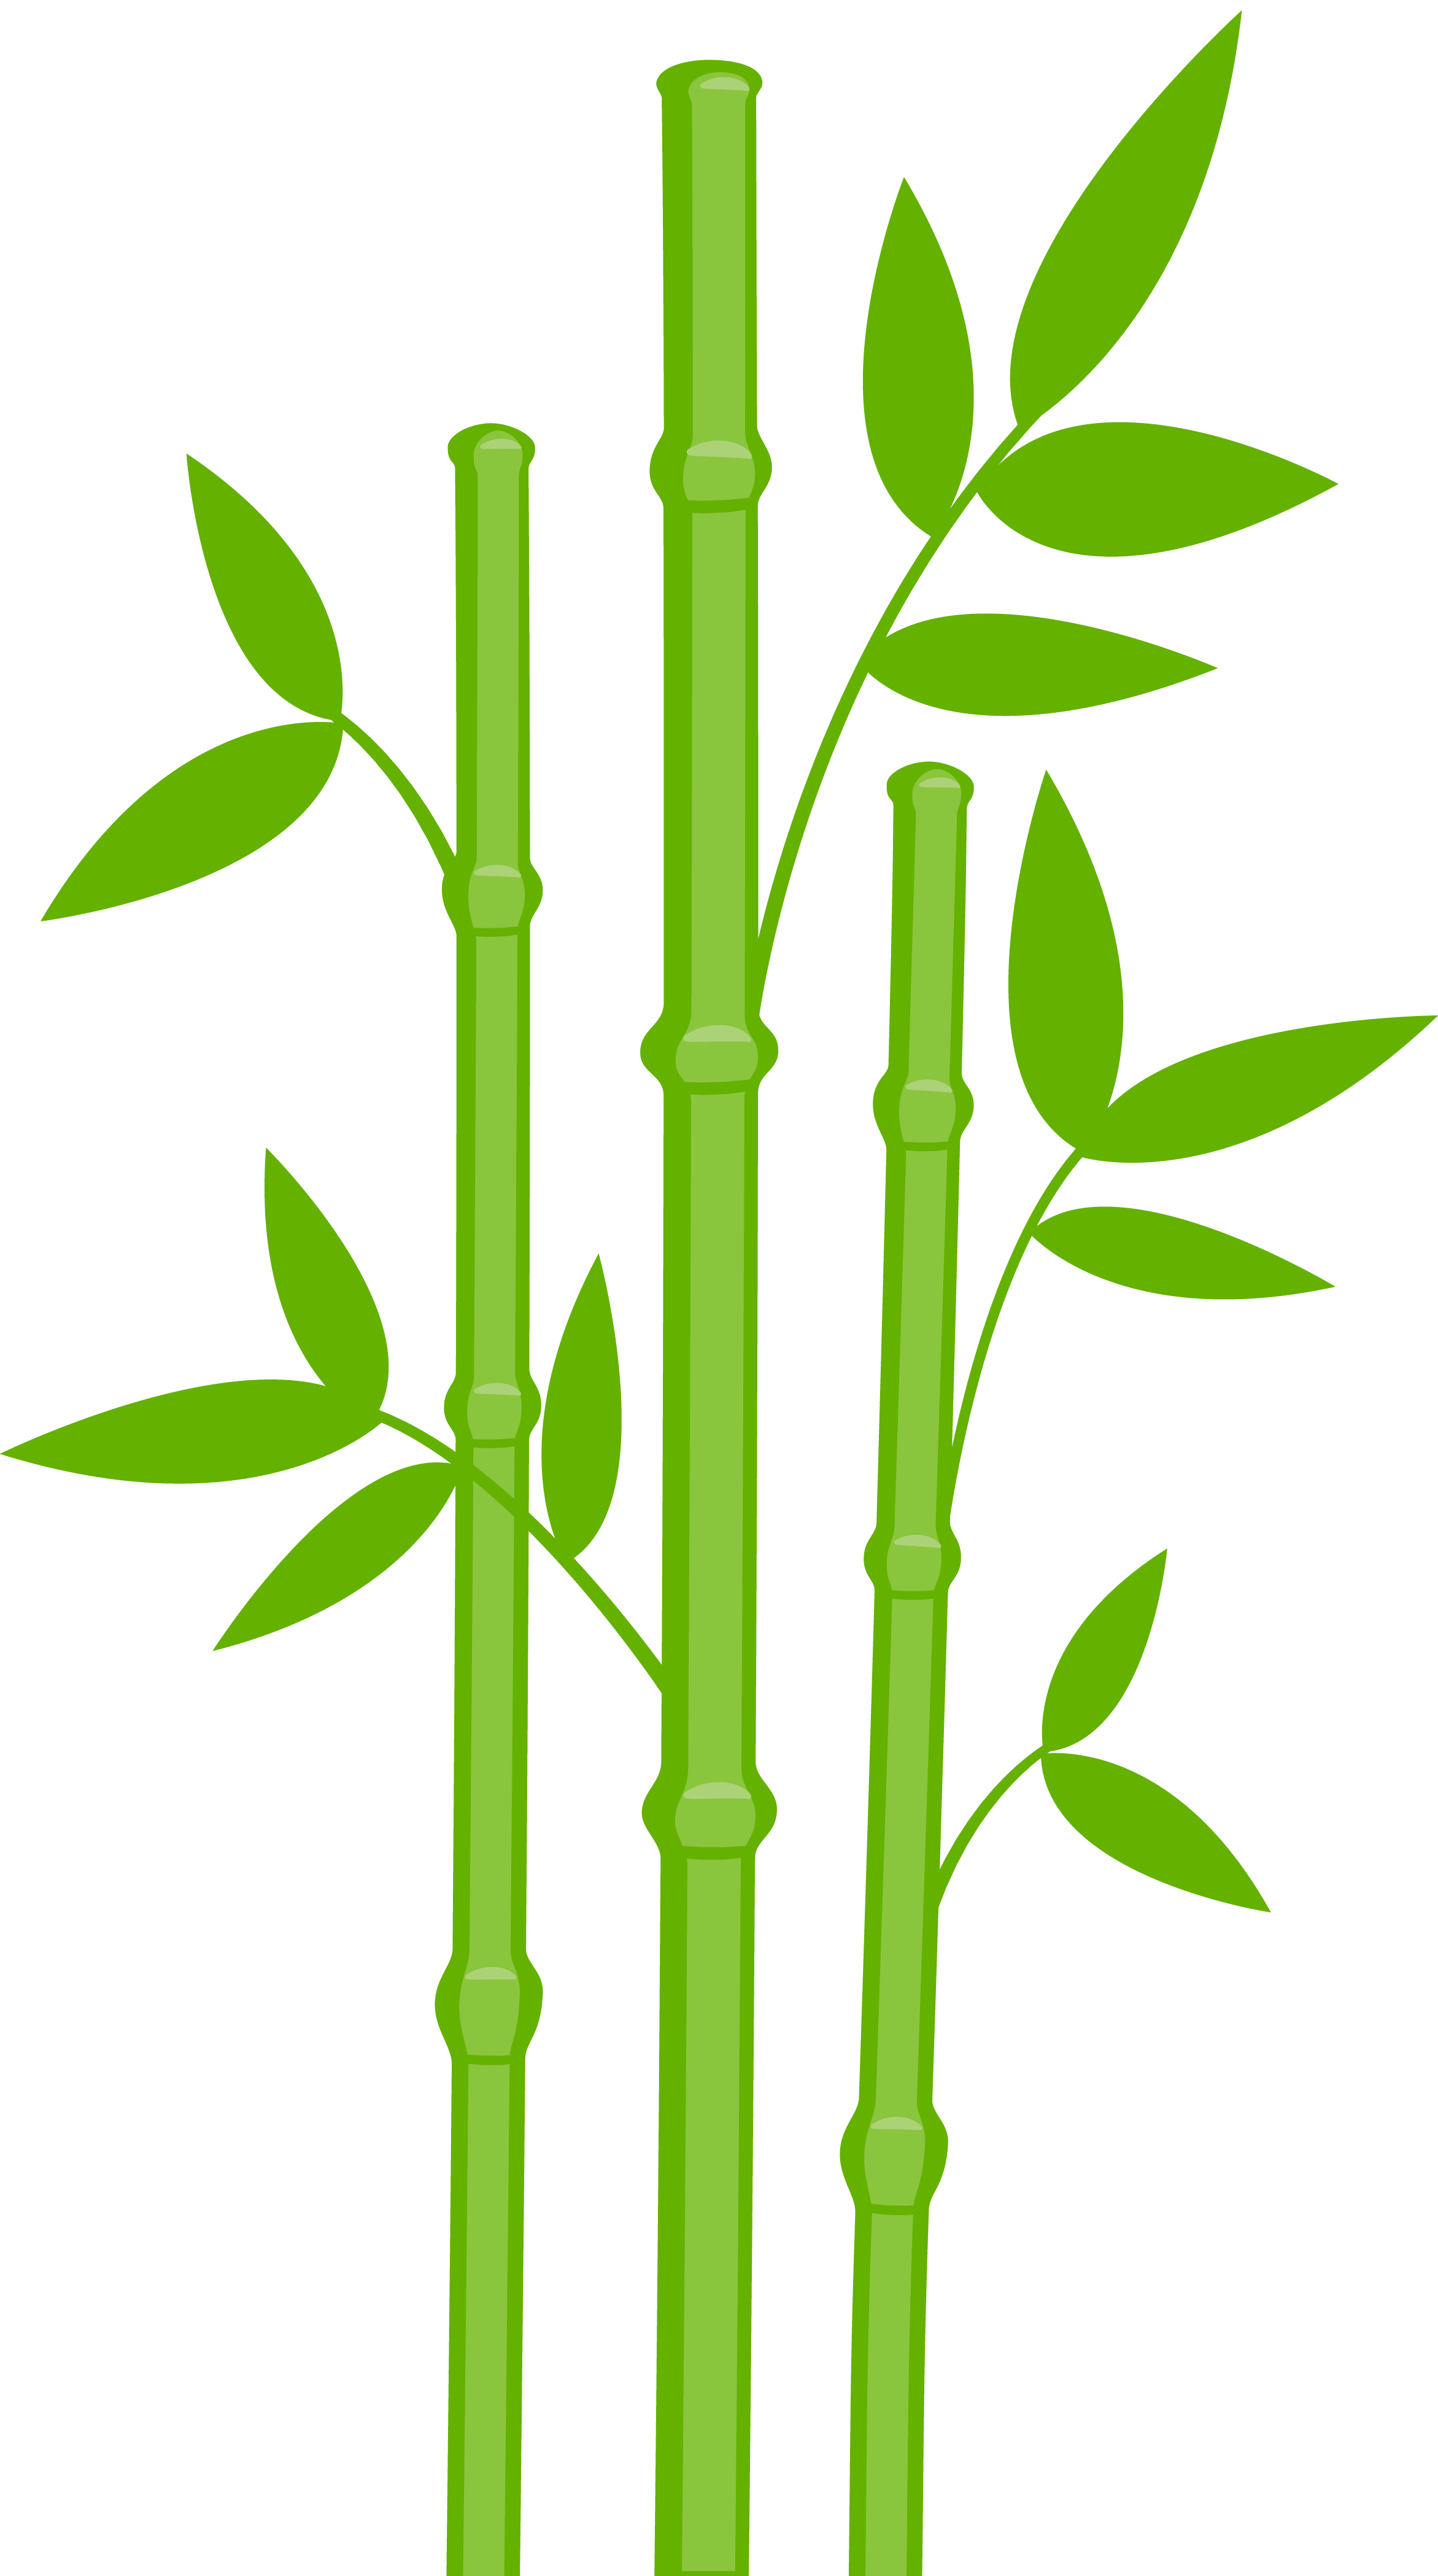 Bamboo house clipart picture free stock Panda Bear 1 - bamboo group.png - Minus | Art | Pinterest | Panda ... picture free stock